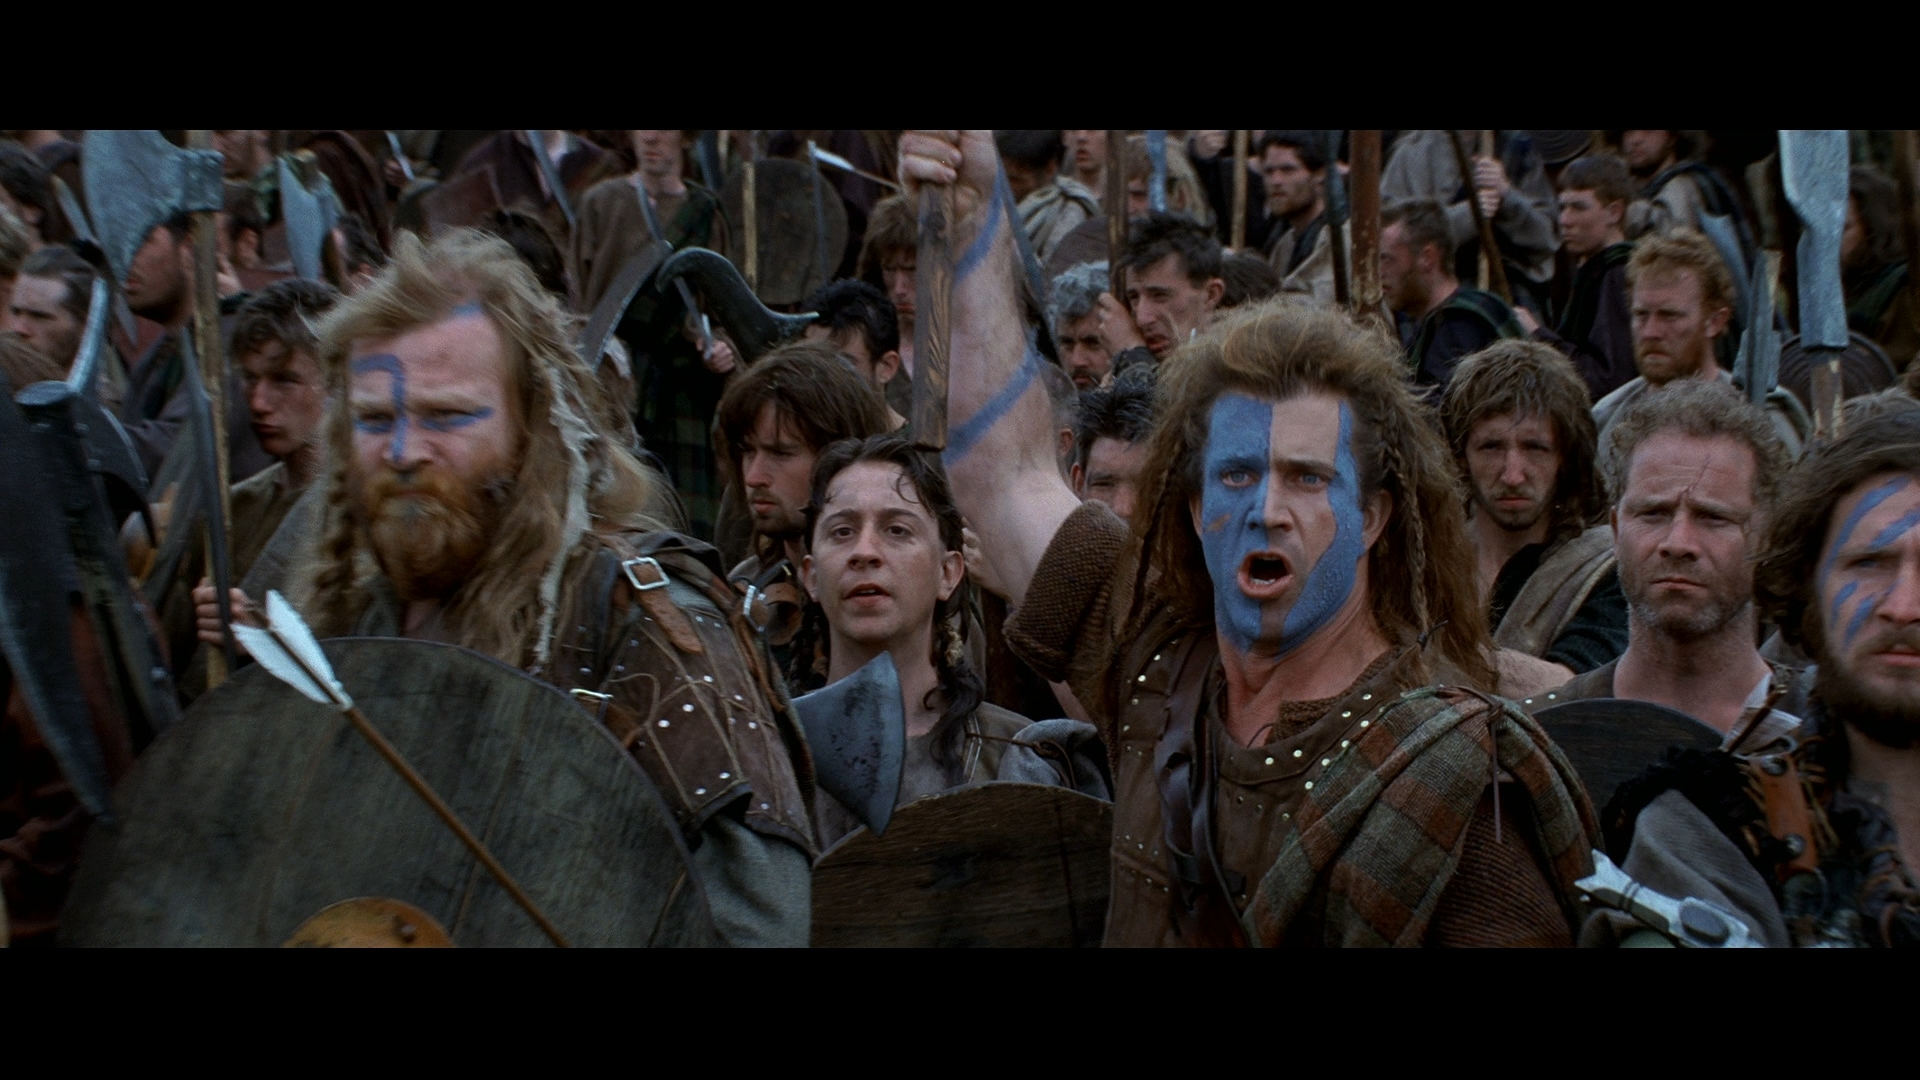 Special review braveheart a tale of love and conflict Corazon valiente pelicula